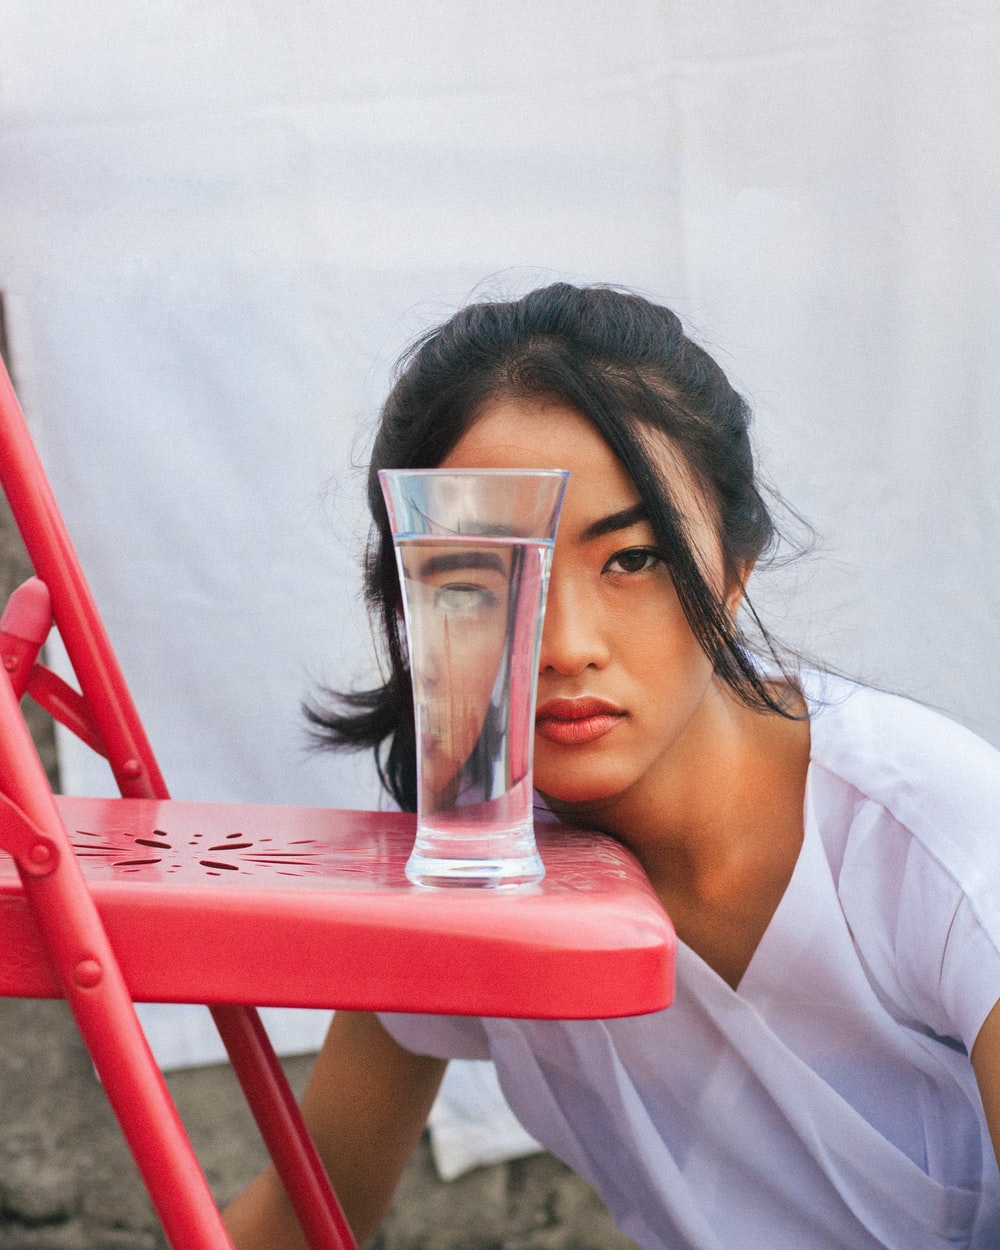 woman in white top looking through glass of water